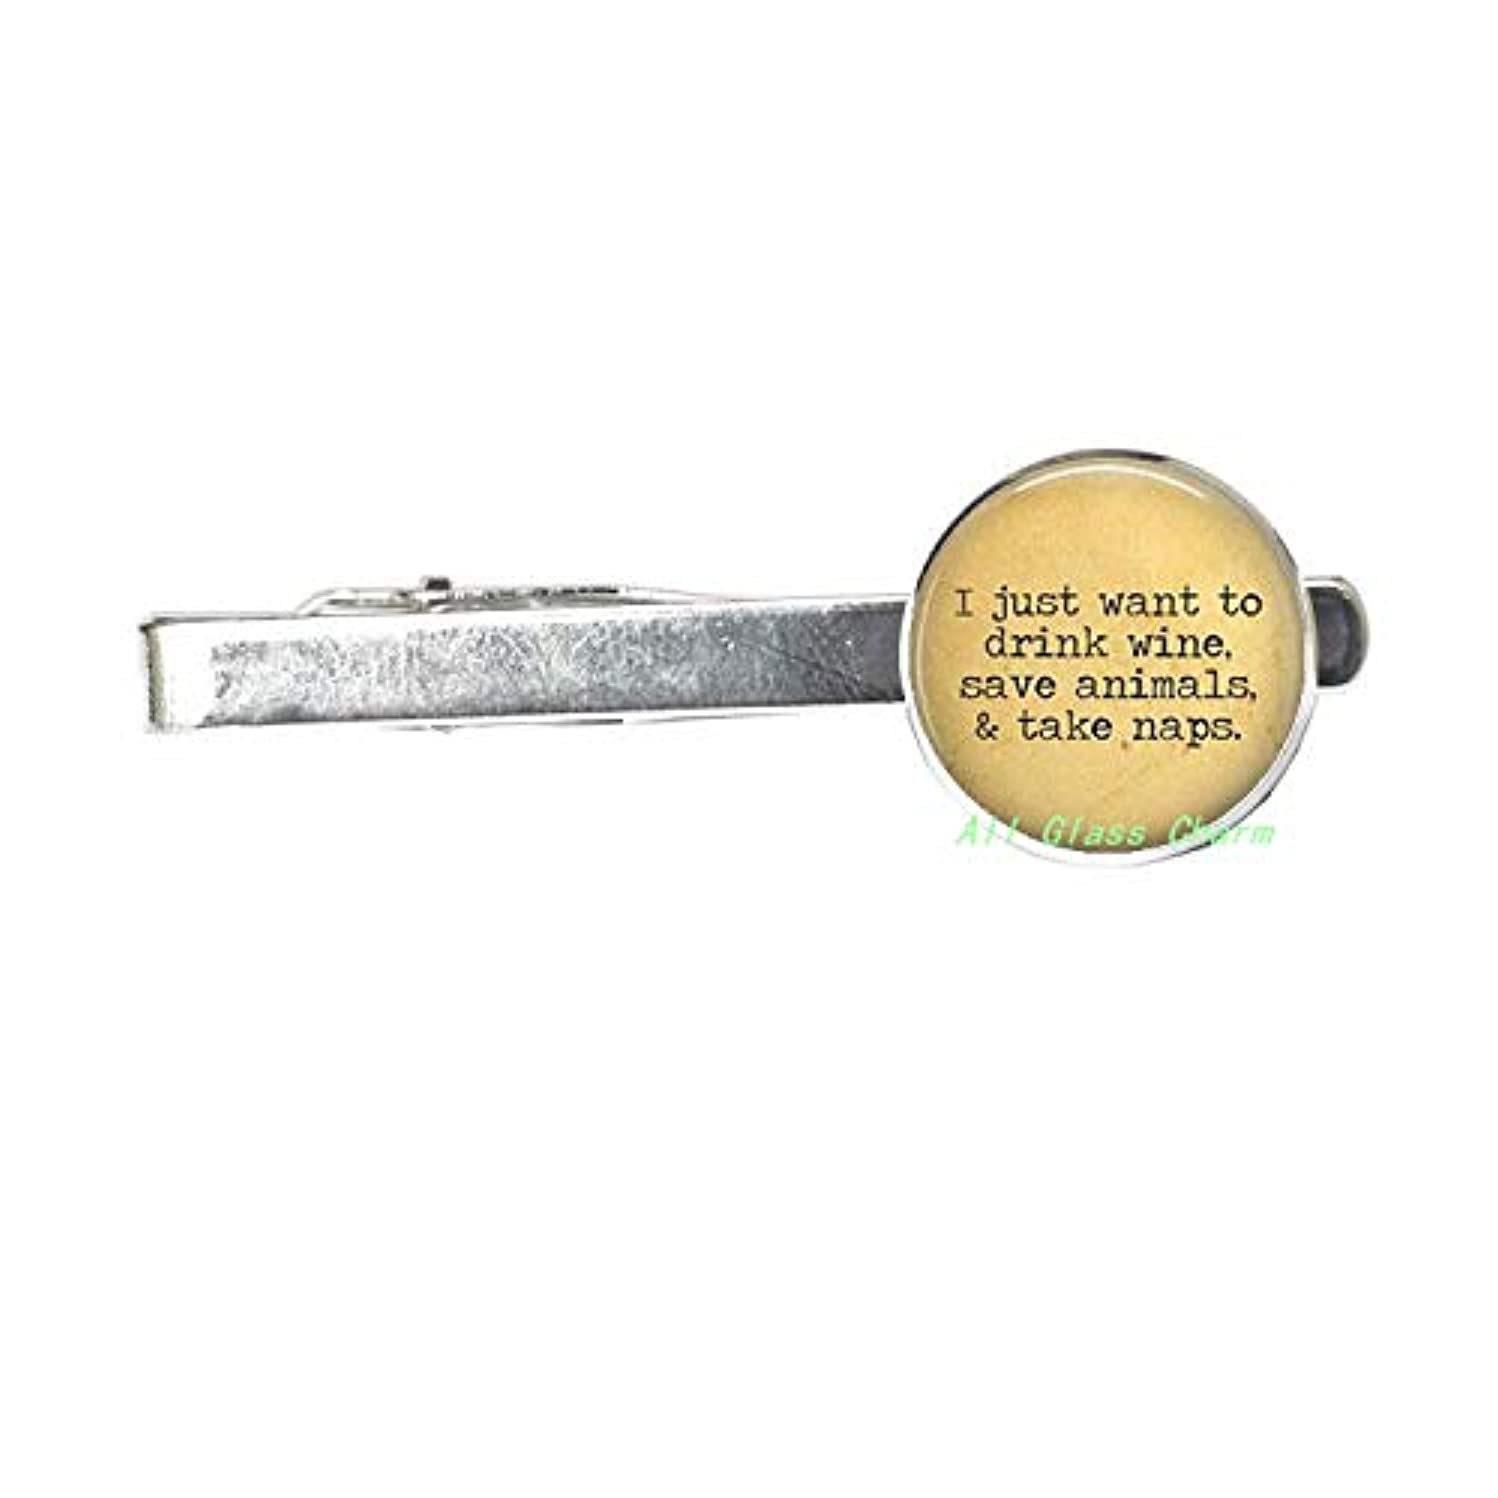 Tie Pin Tie Clip I just Want to Drink Wine,Save Animals,and take naps-Funny Wine Quote,AS017 (A1)